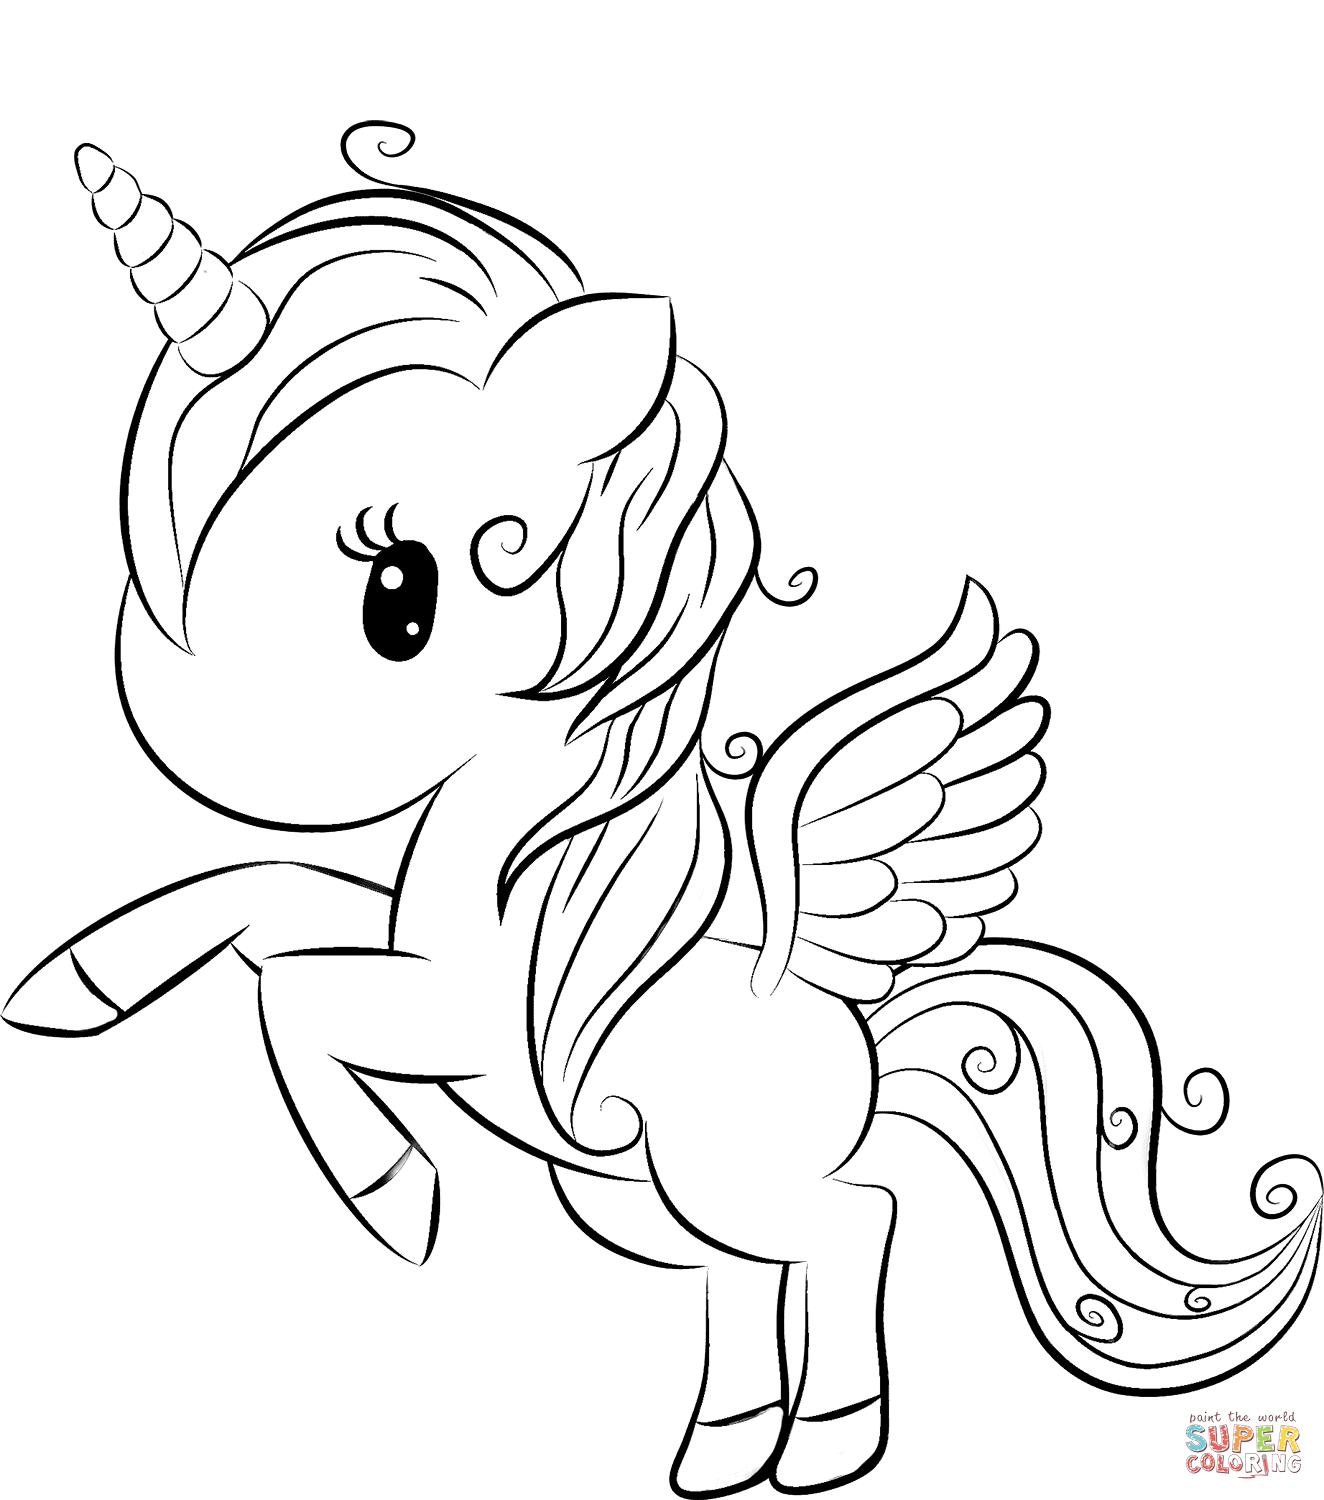 cute easy unicorn coloring pages unicorn coloring pages to download and print for free coloring unicorn easy cute pages